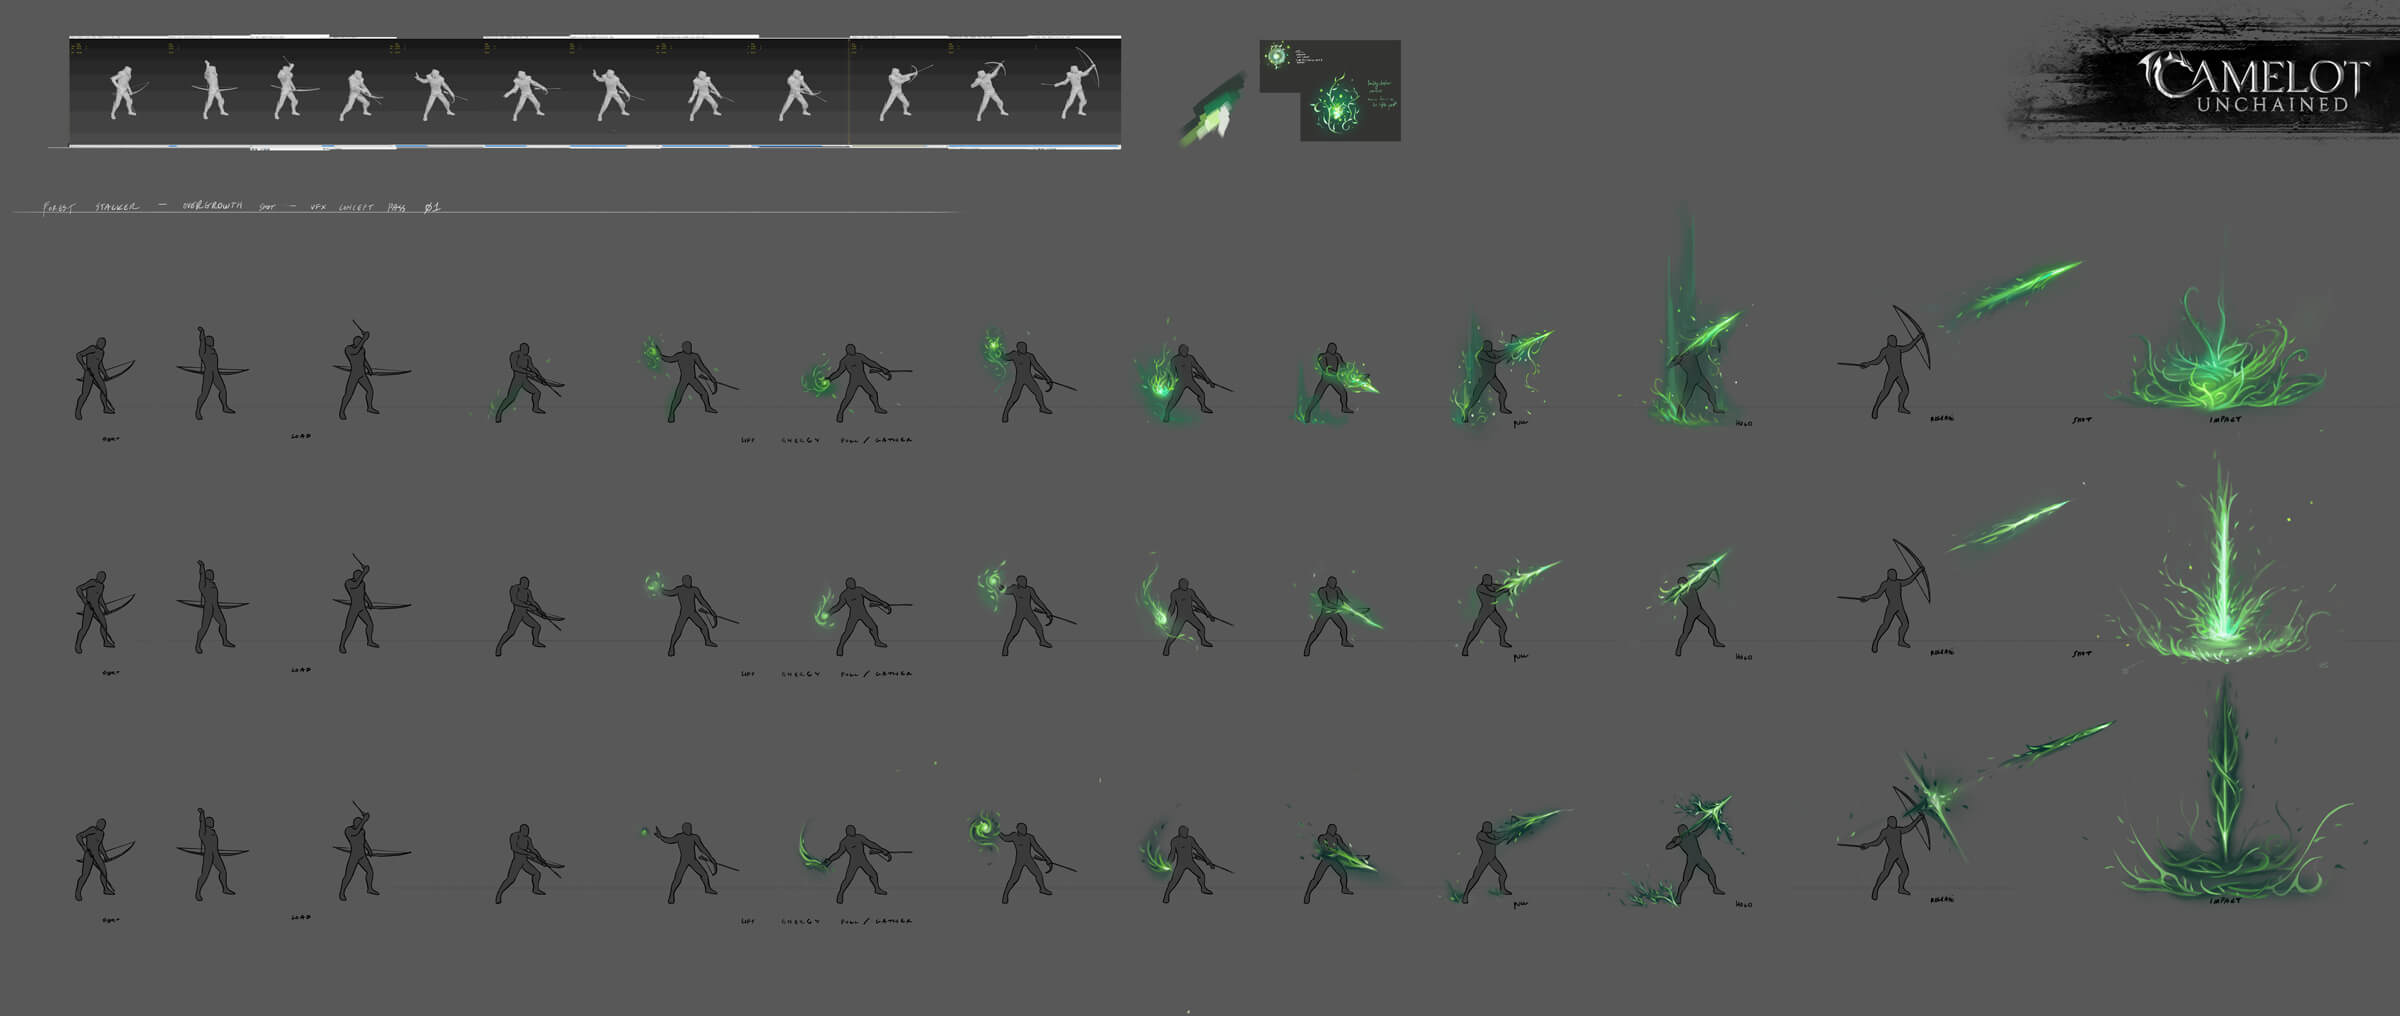 Camelot-Unchained-Skills-Animation-Concept-Art-2